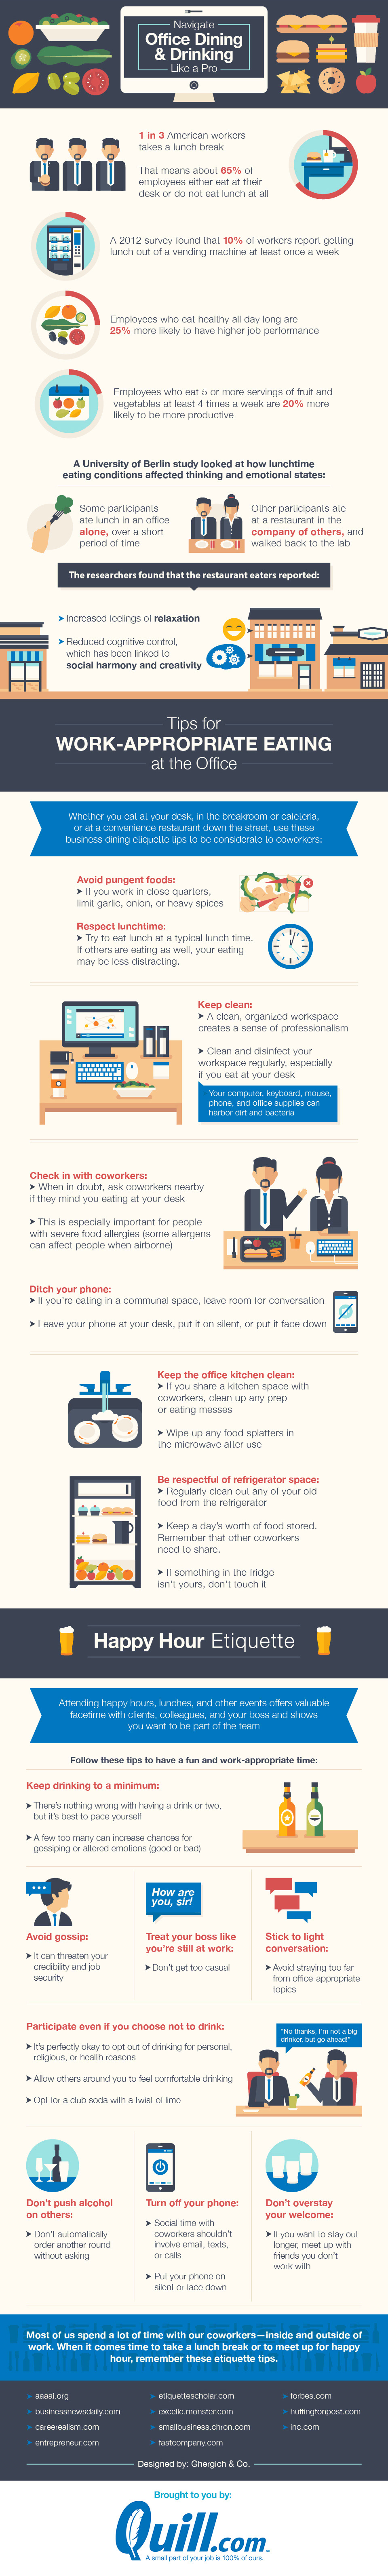 office dining infographic dine to impress